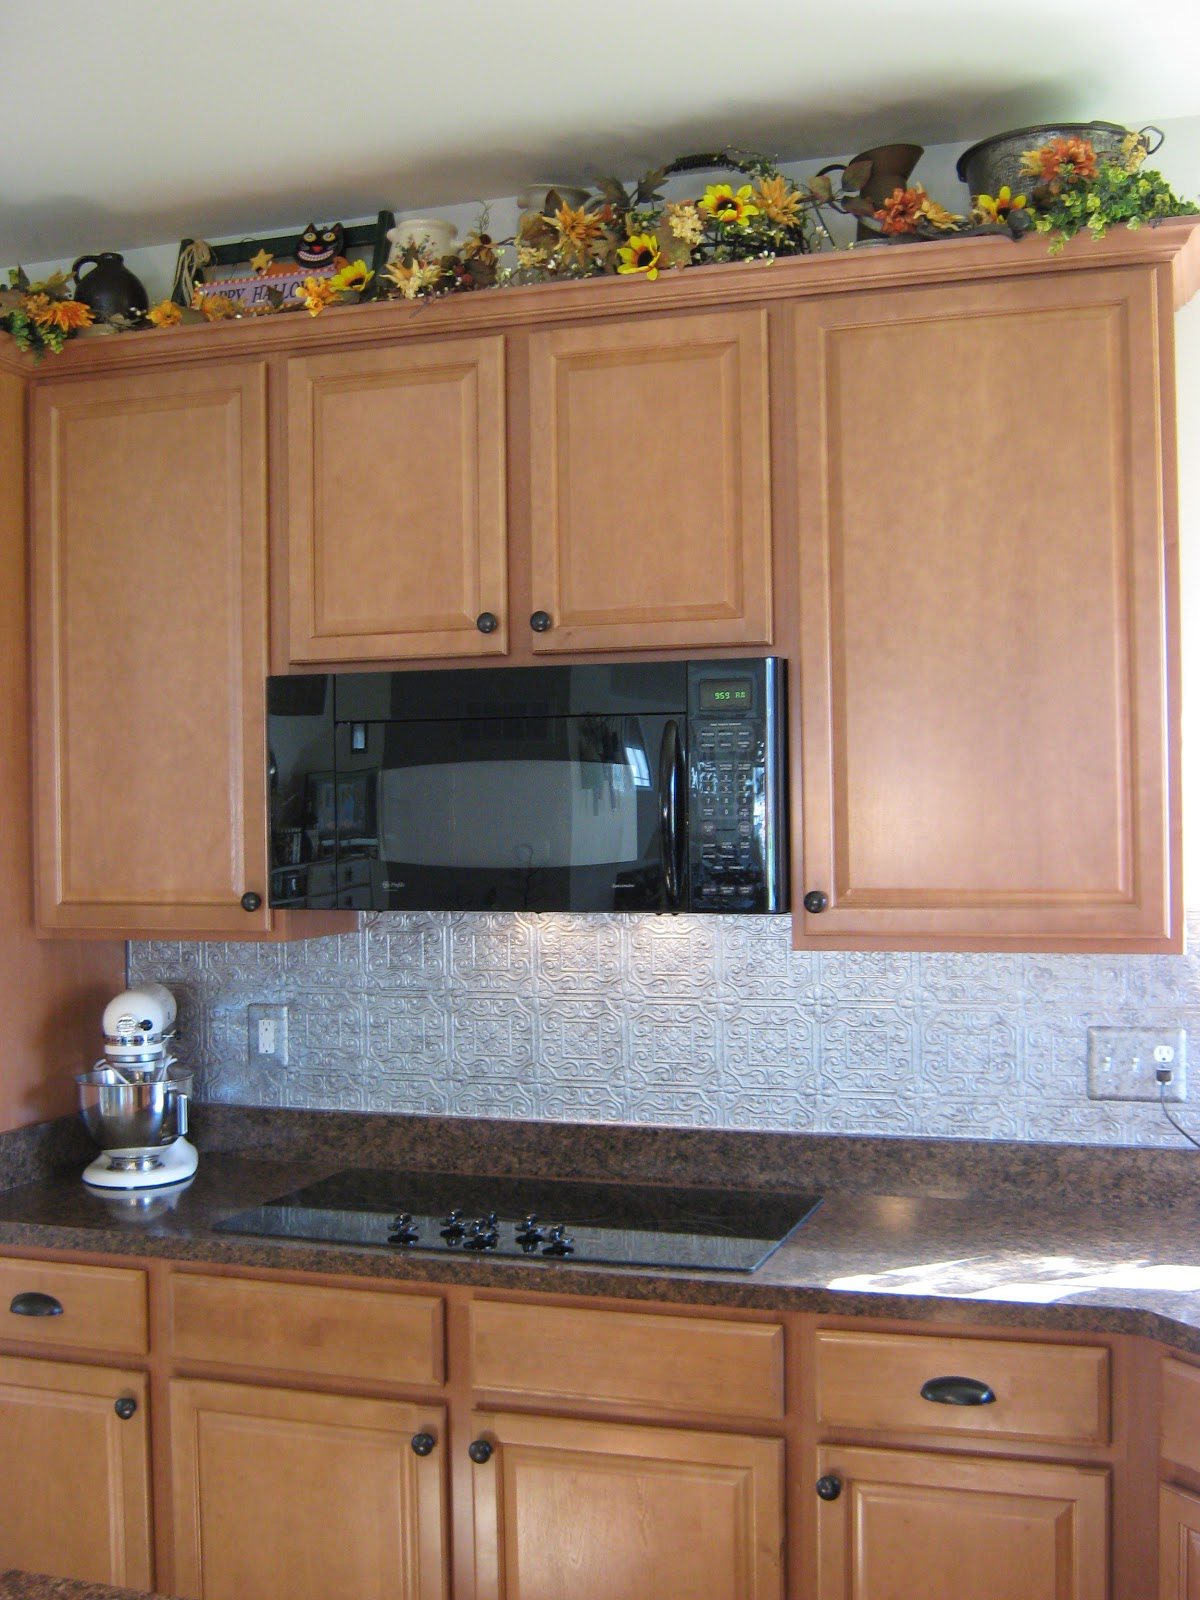 Fake it frugal: fake punched tin backsplash